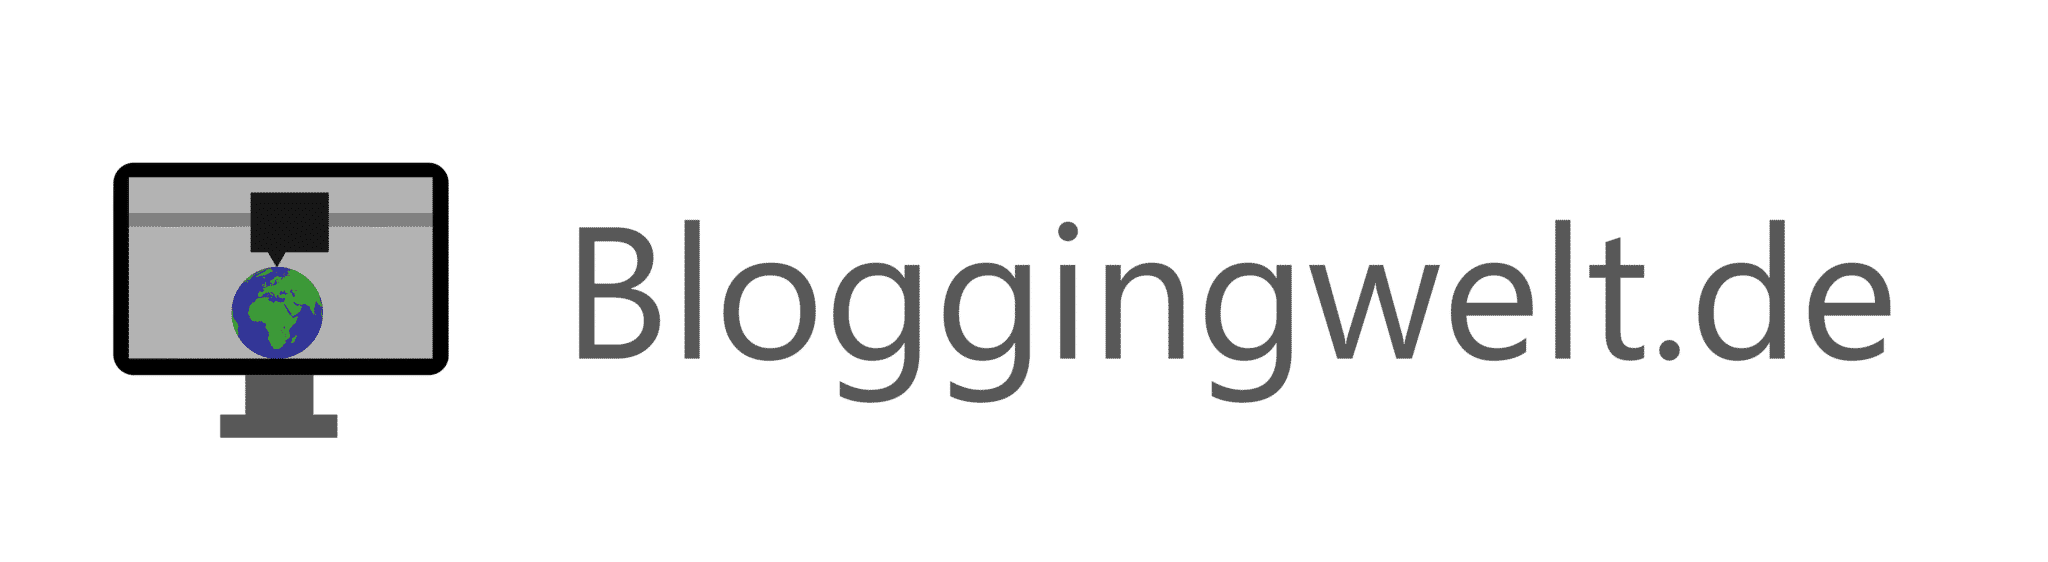 Bloggingwelt